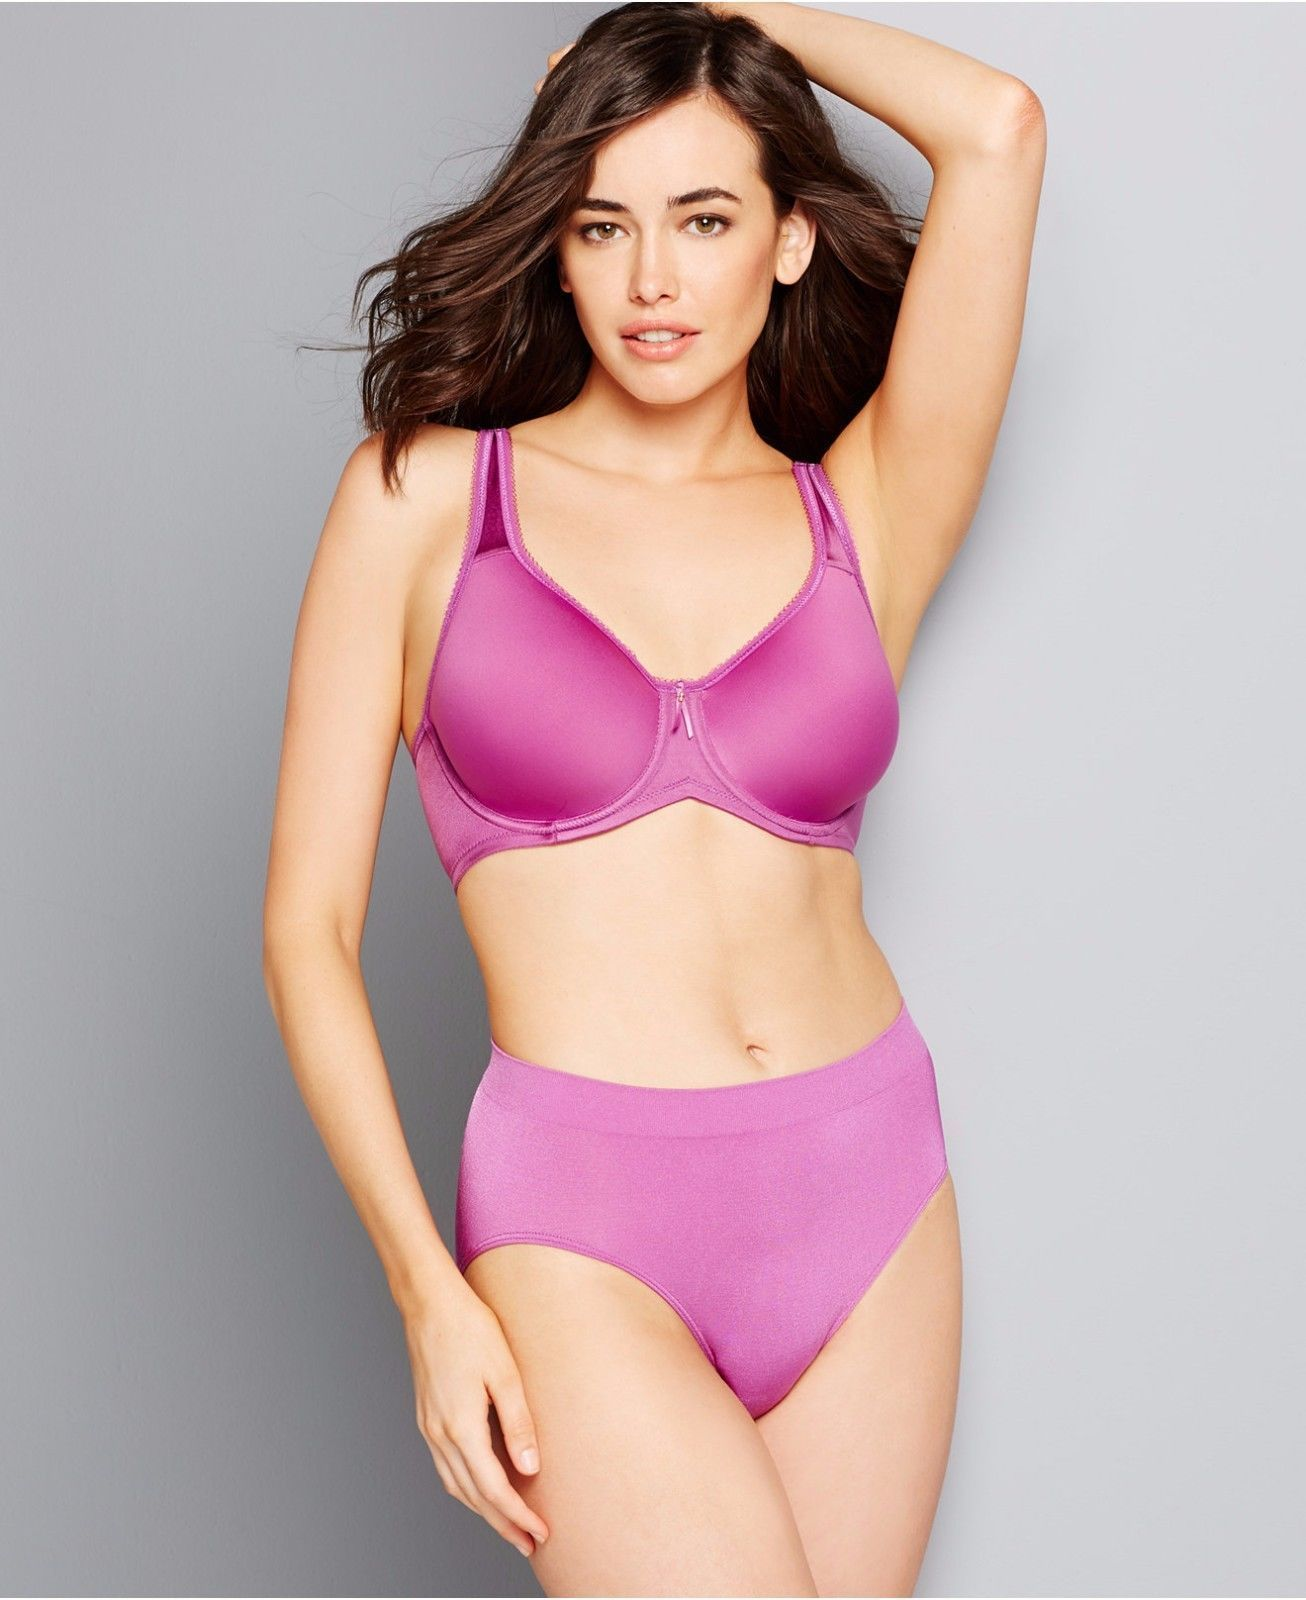 5a083c02ae1 Wacoal 853192 Basic Beauty Spacer Underwire T-Shirt Bra + Panty Hyacinth  Val  70